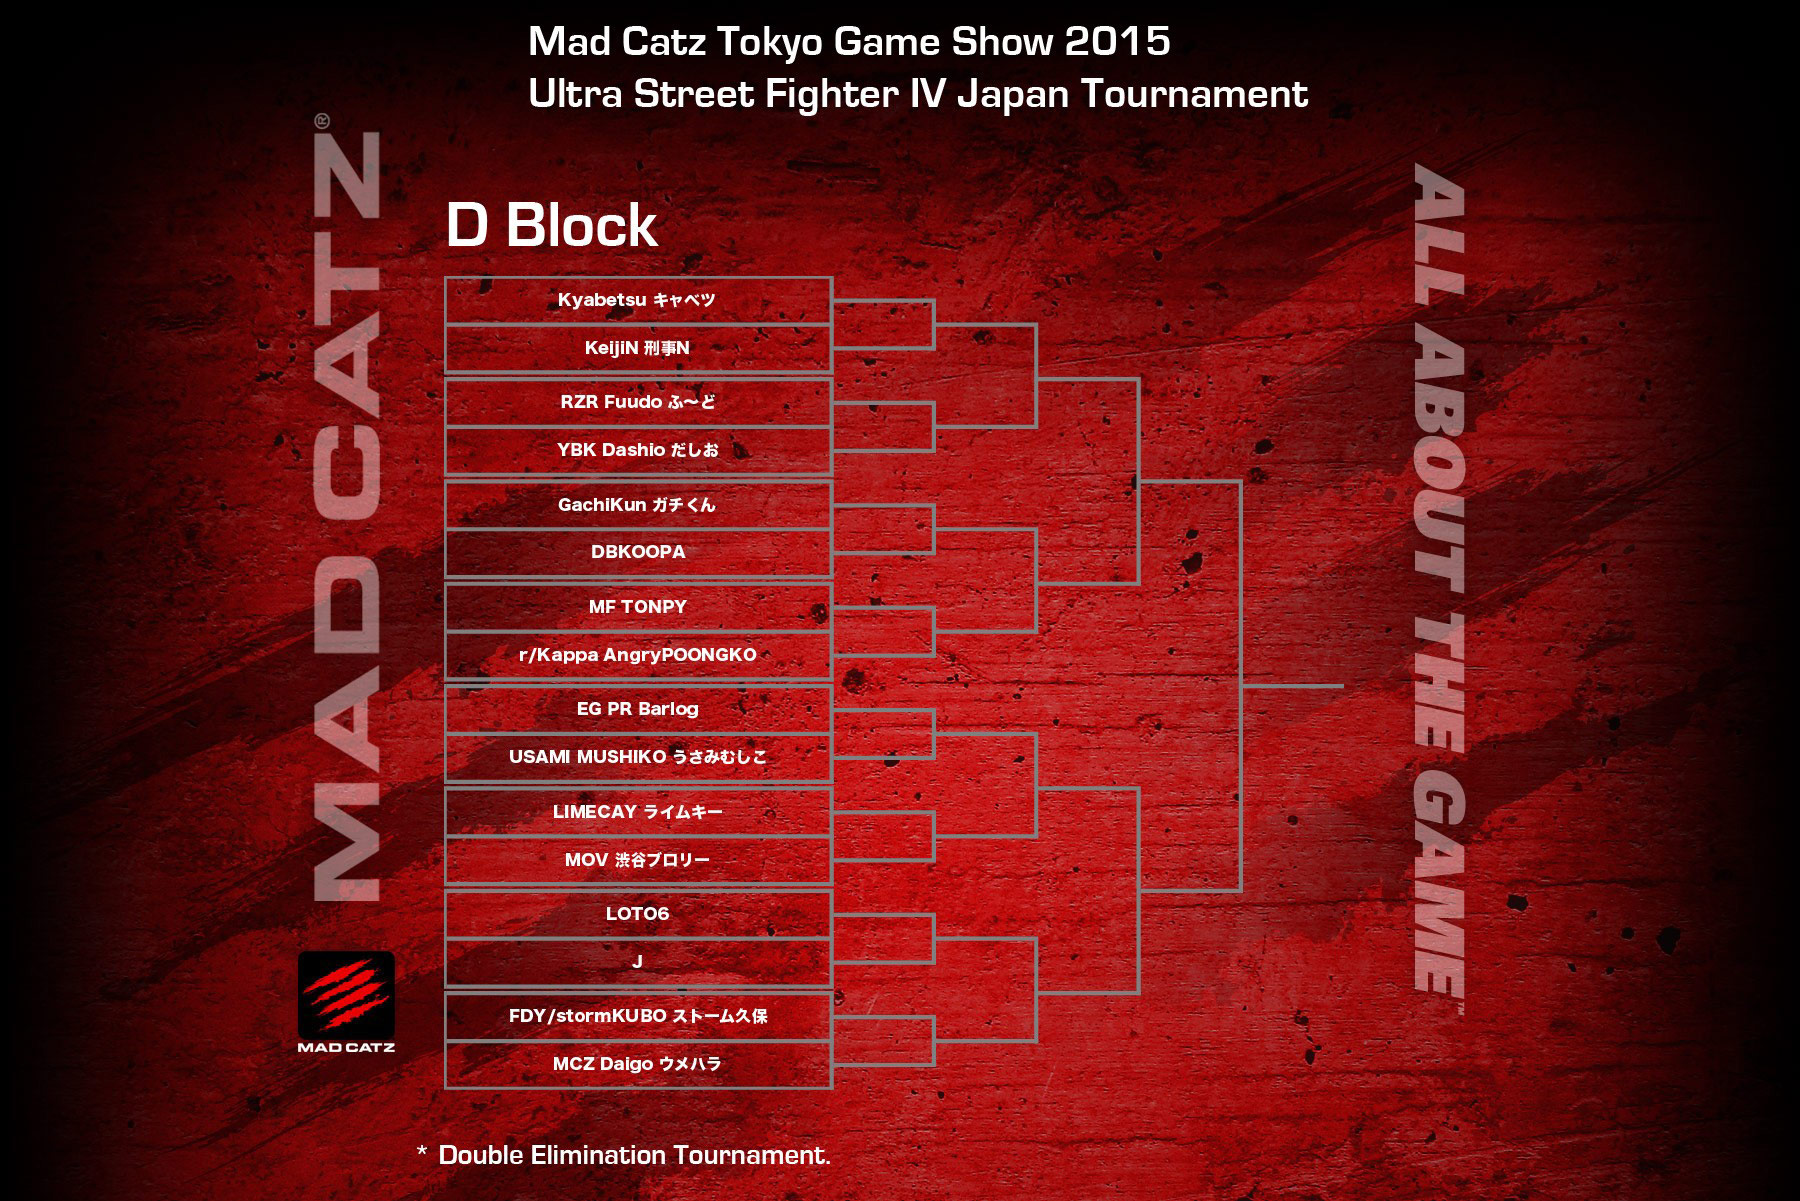 Tokyo Game Show 2015 USF4 bracket 4 out of 4 image gallery